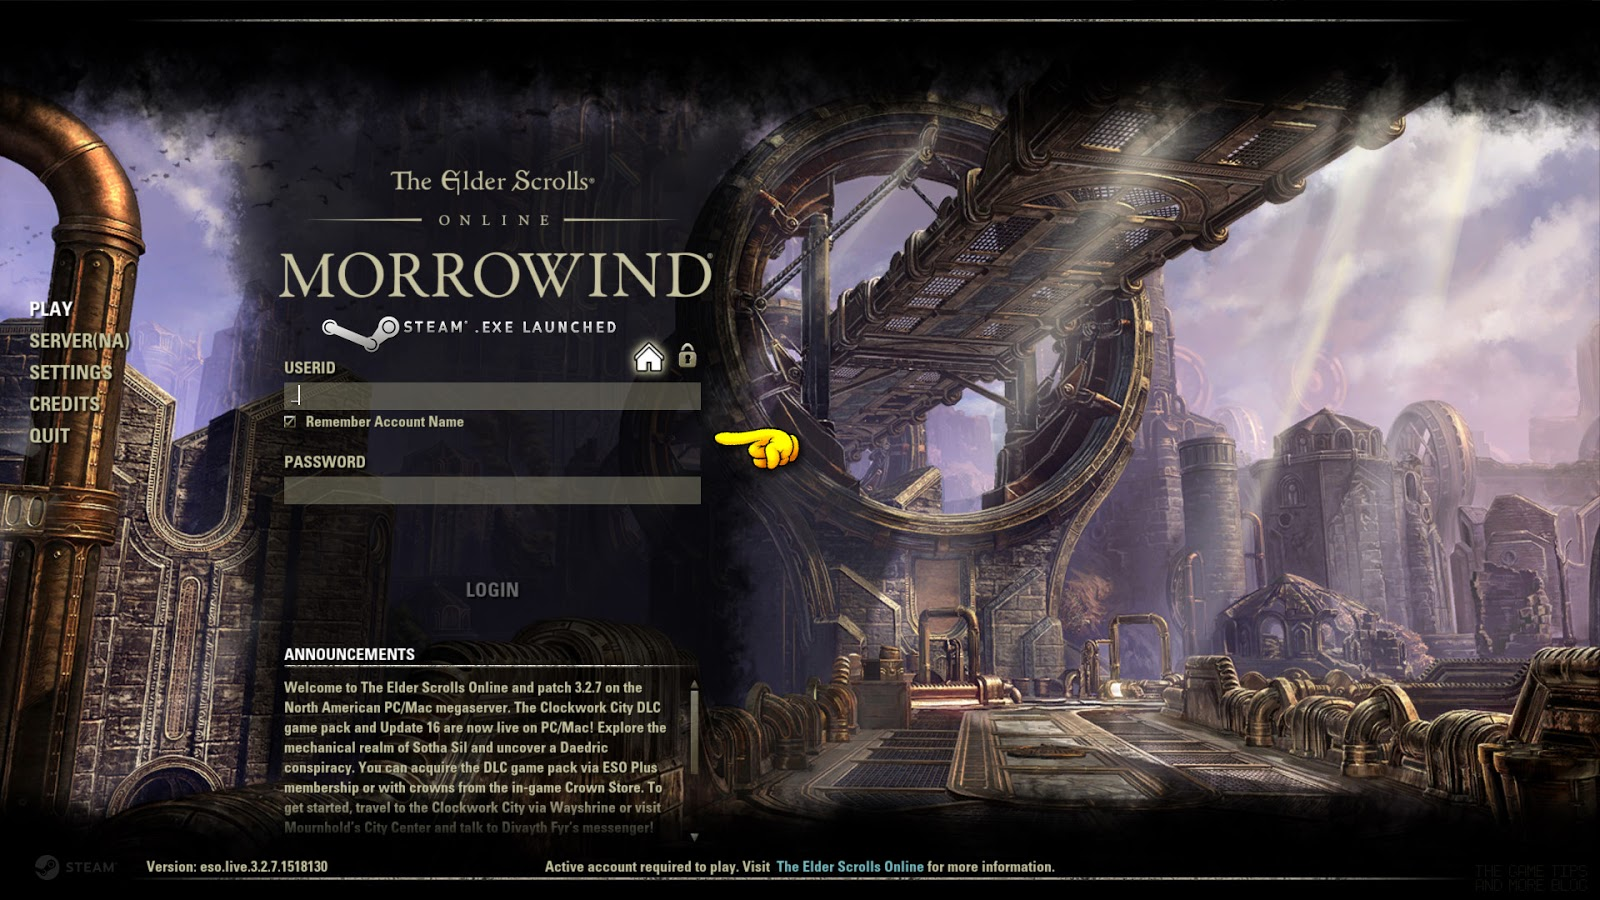 The Game Tips And More Blog: The Elder Scrolls Online - How